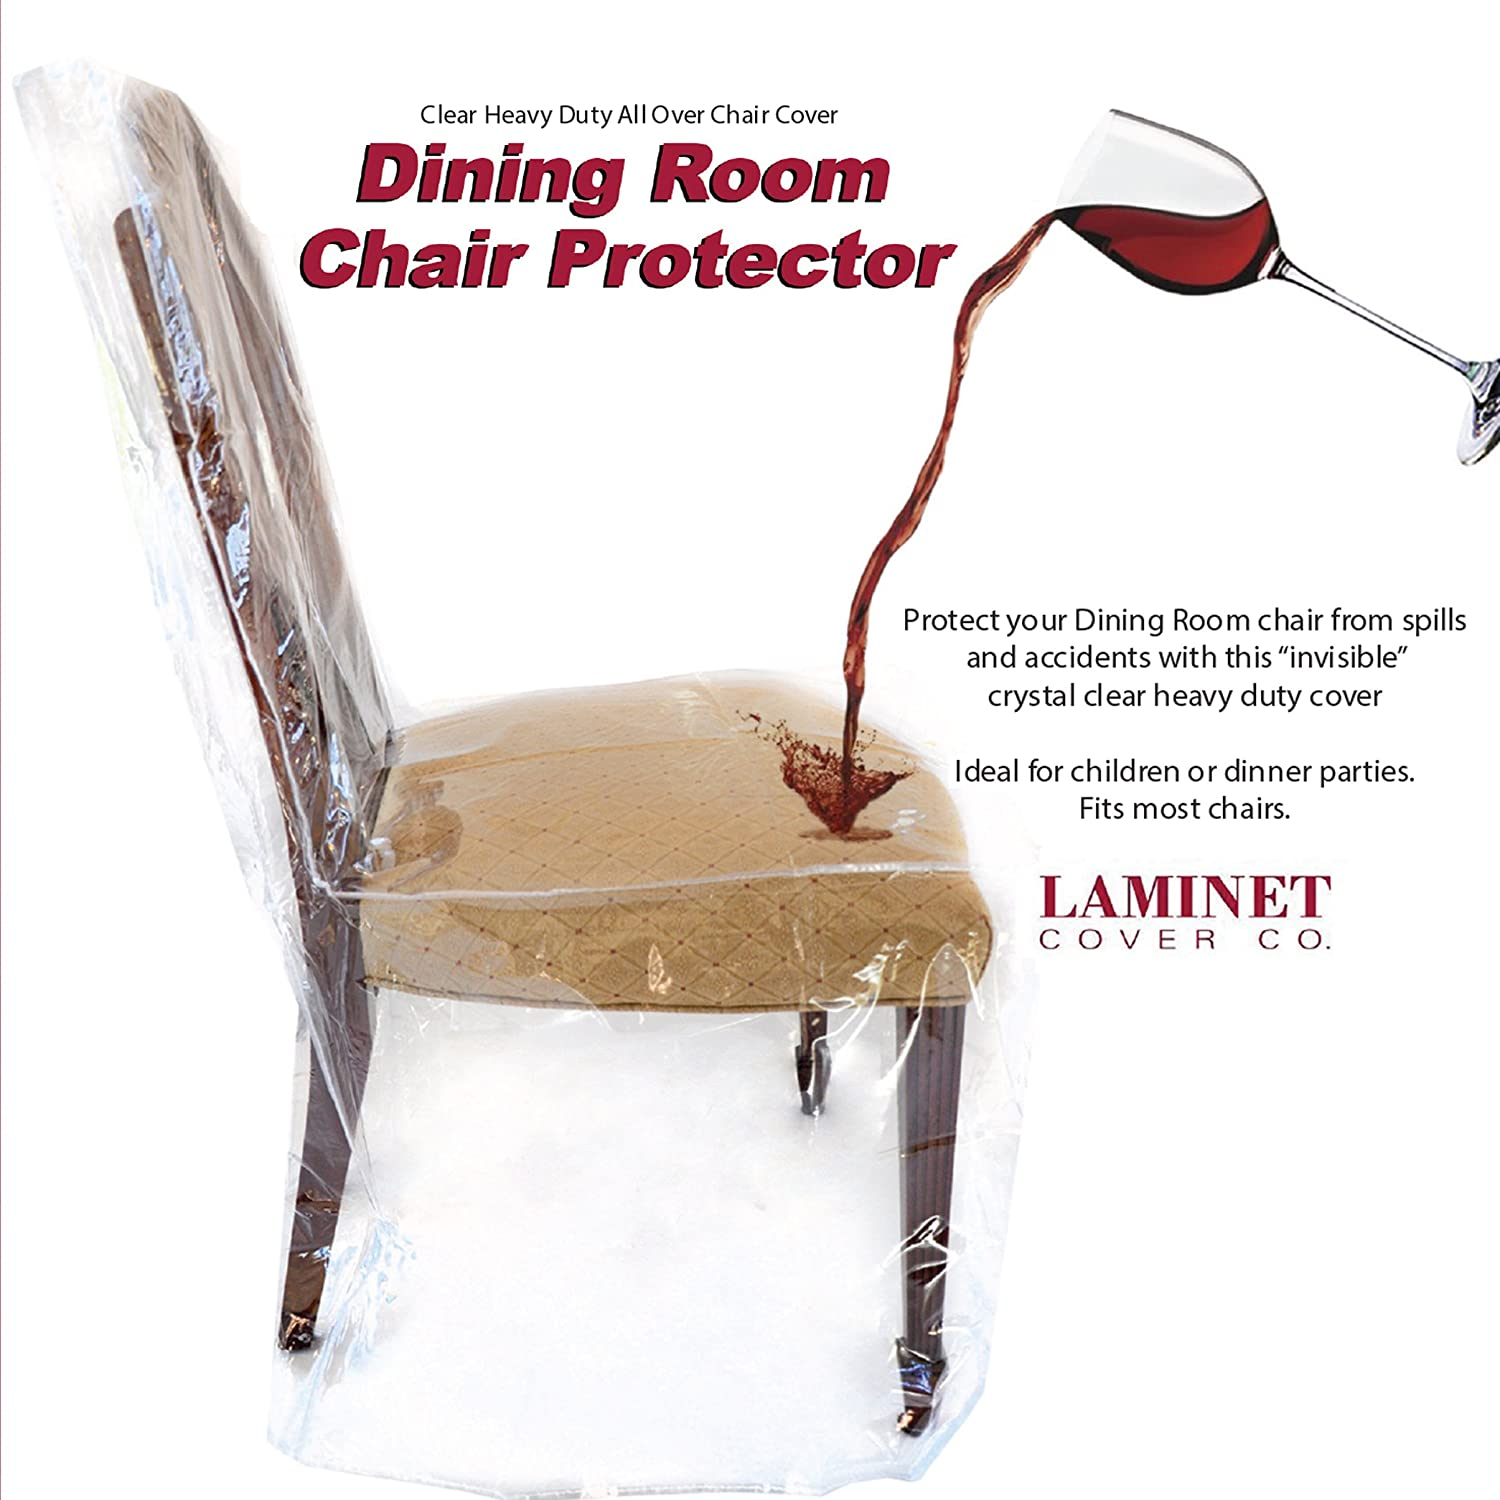 LAMINET Dining Room Chair Protector (set of 1)